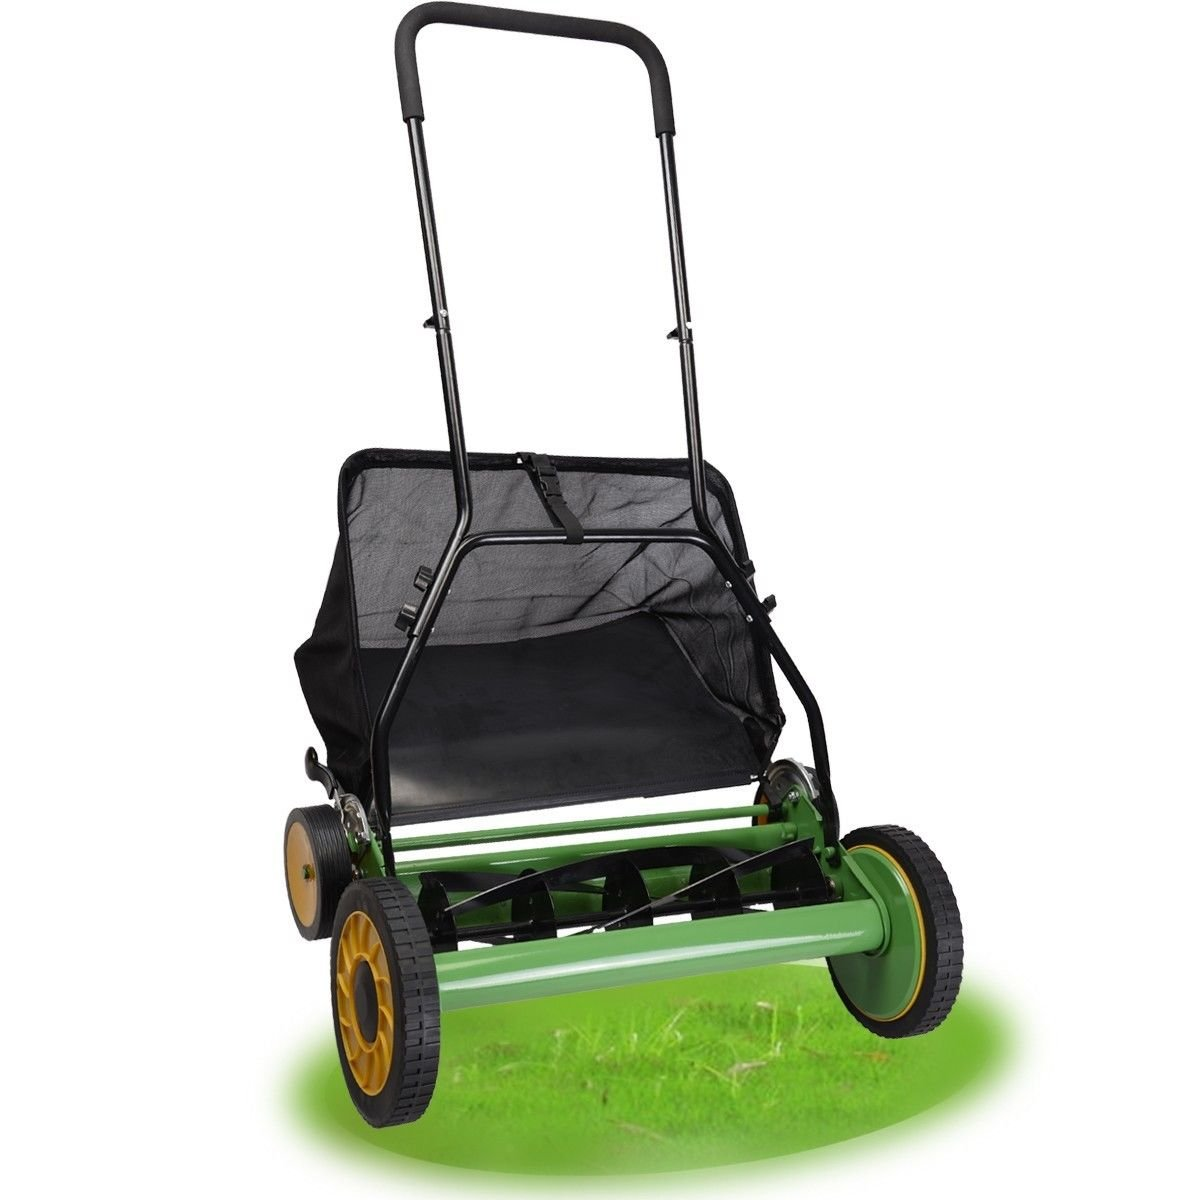 Goplus 20'' Classic Hand Push Lawn Mower 10'' and 6'' Dual Tracking Wheels and Rugged Rubber Tires by Goplus